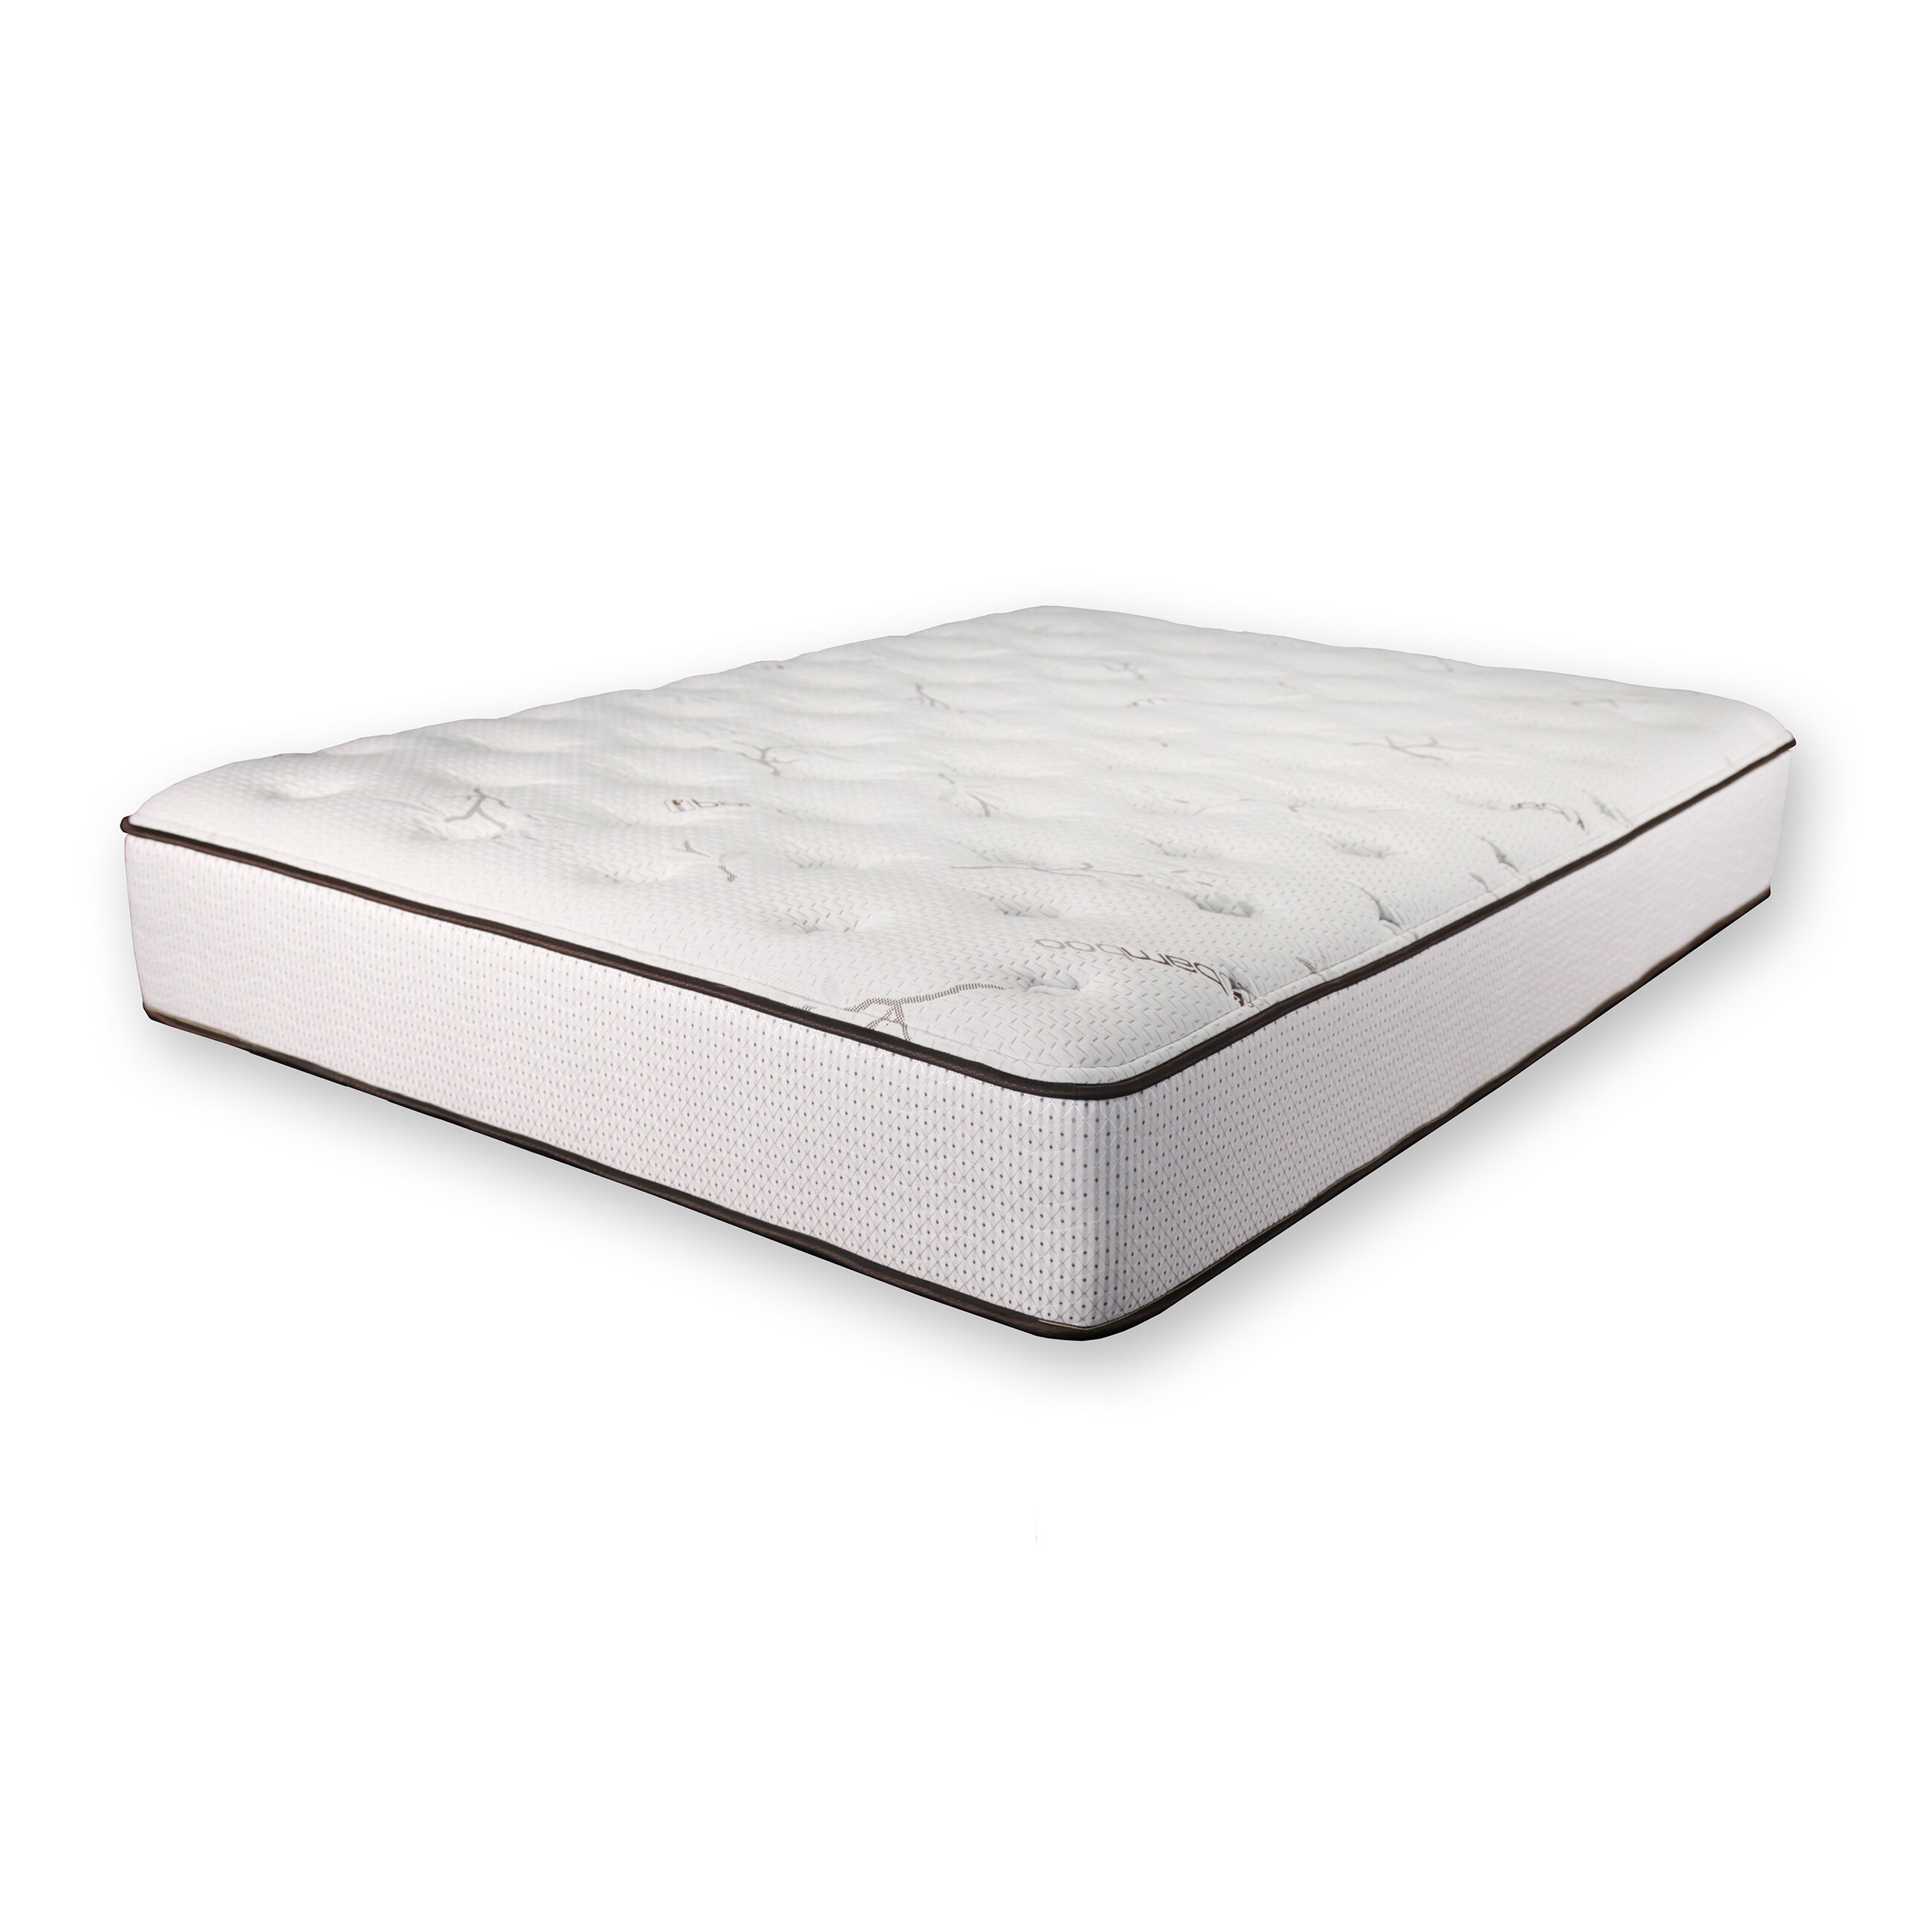 "Brooklyn Bedding Ultimate Dreams 10"" Latex Foam Mattress"